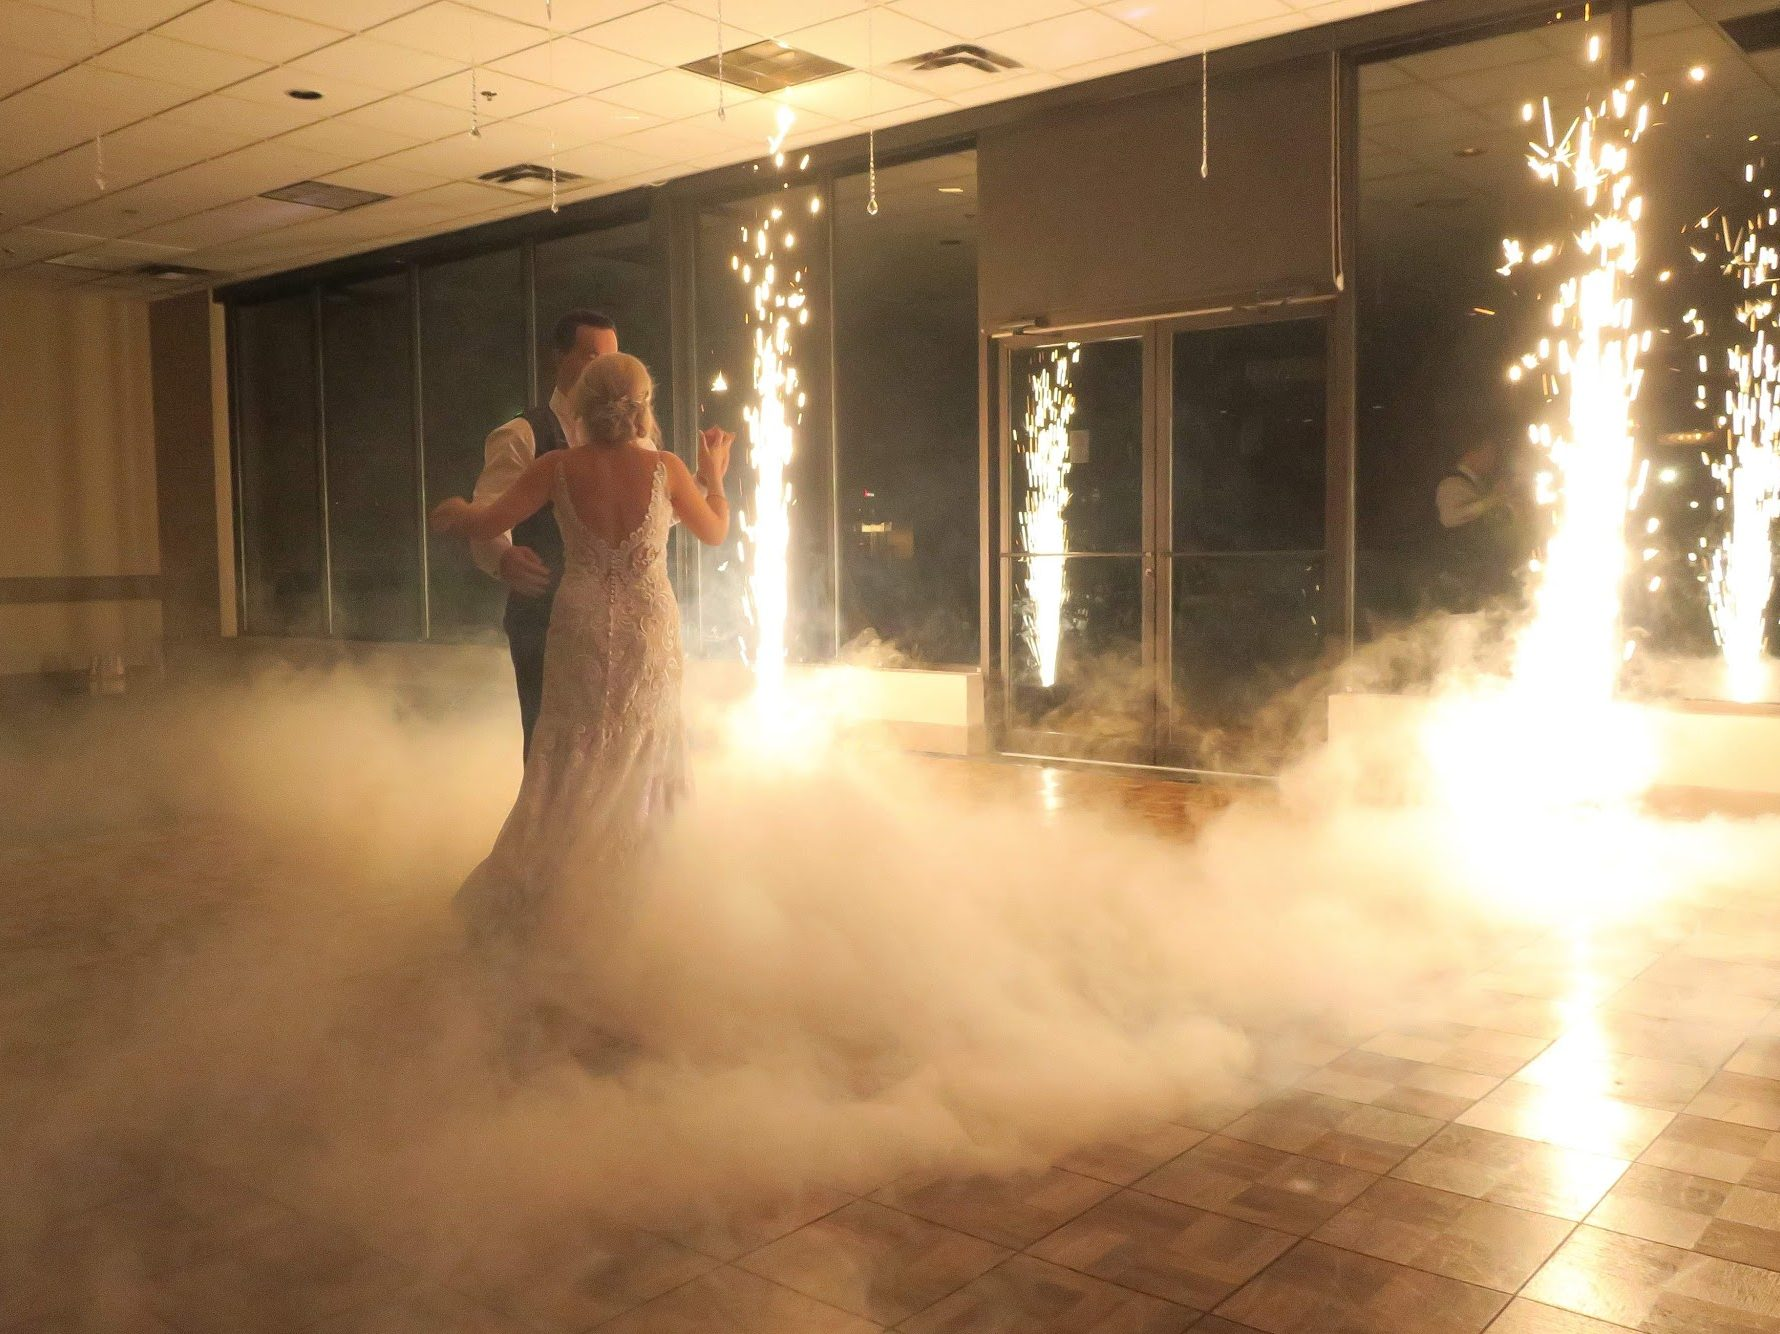 first dance at wedding with sparklers